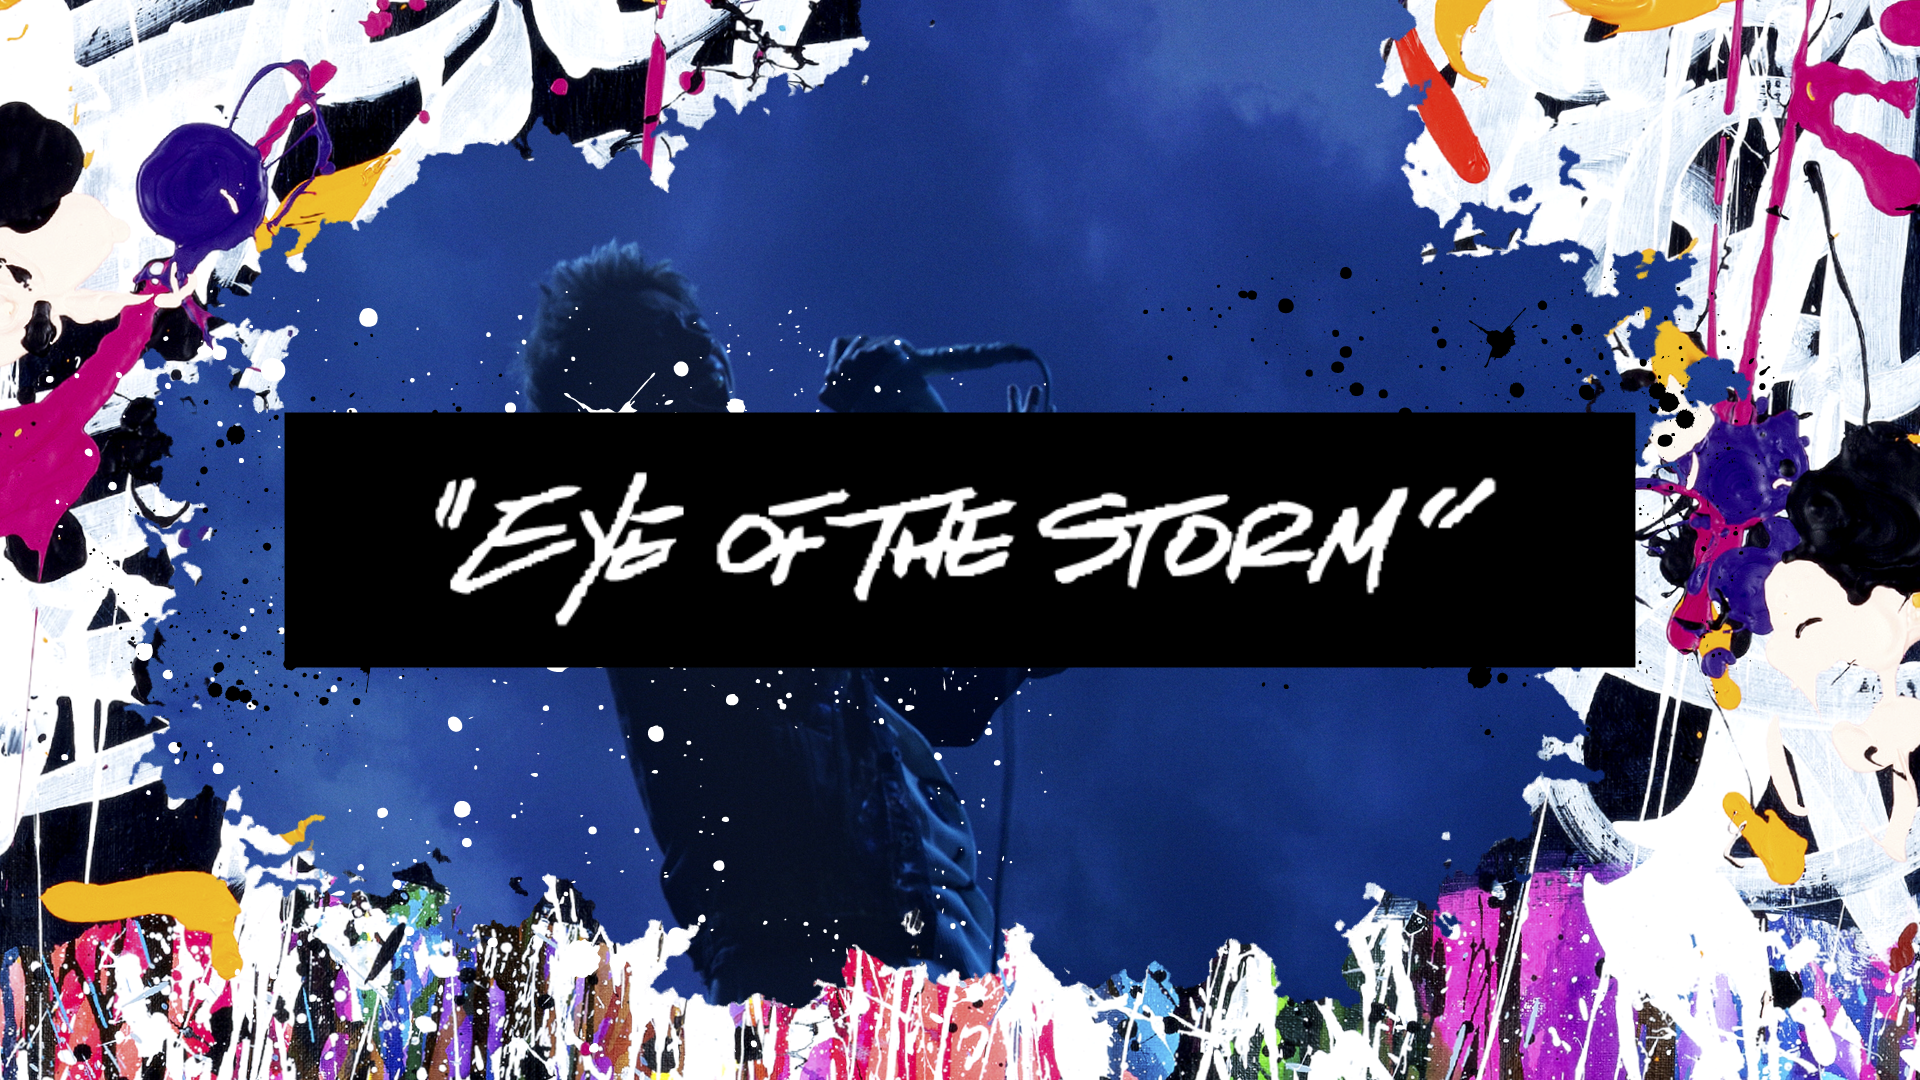 One Ok Rock Eye Of The Storm Teaser Movie Shuji Hirai 平井 秀次 Motion Graphic Designer Member メンバー一覧 Dep Management デップマネージメント